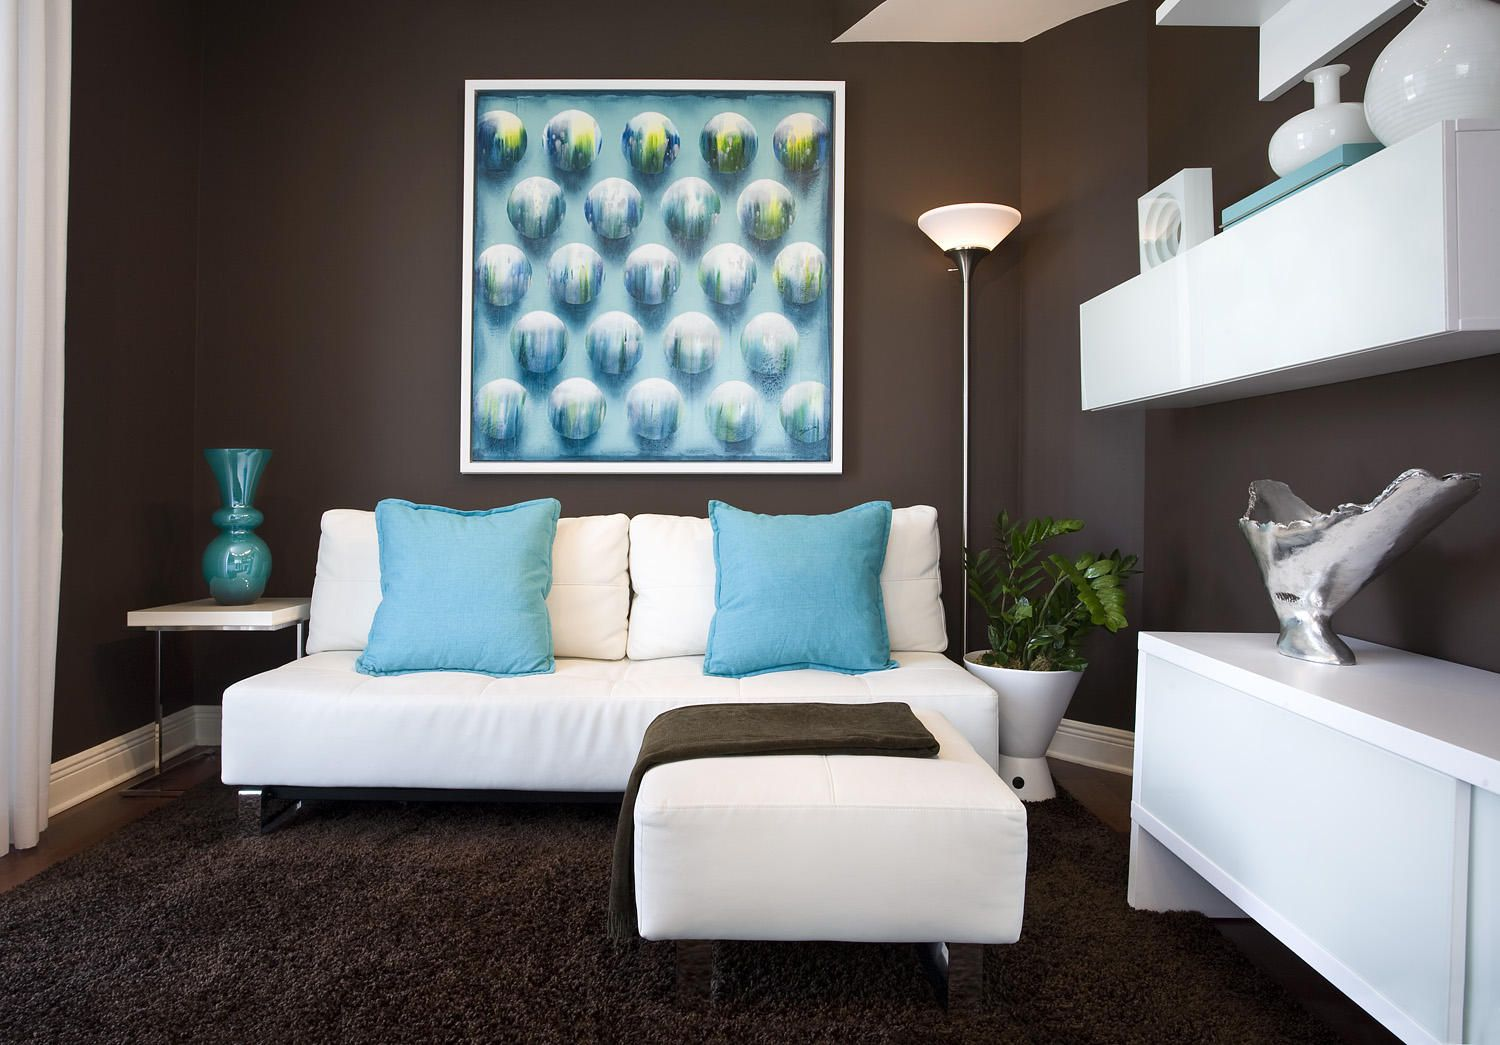 brown and turquoise bedroom. Turquoise room ideas  turquoise bedroom for girls boys Room Ideas and Inspiration to Brighten Up Your House